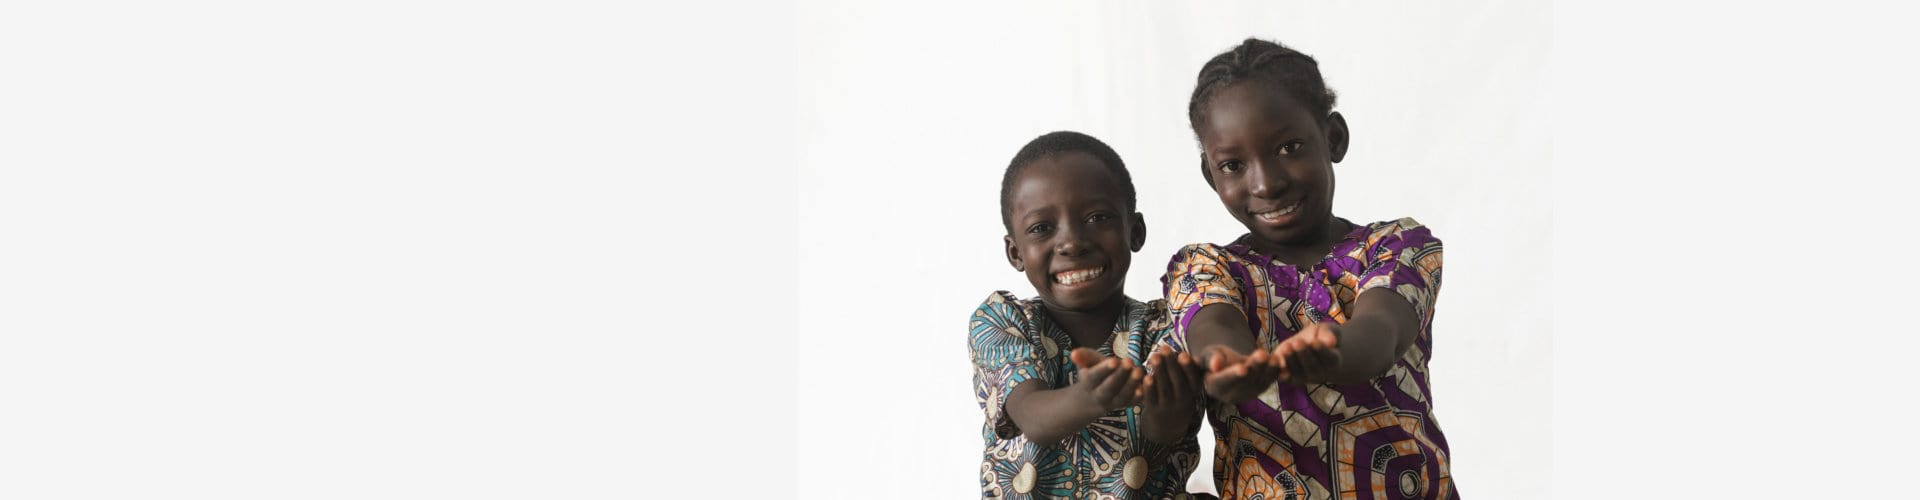 two children showing their palms asking for donation